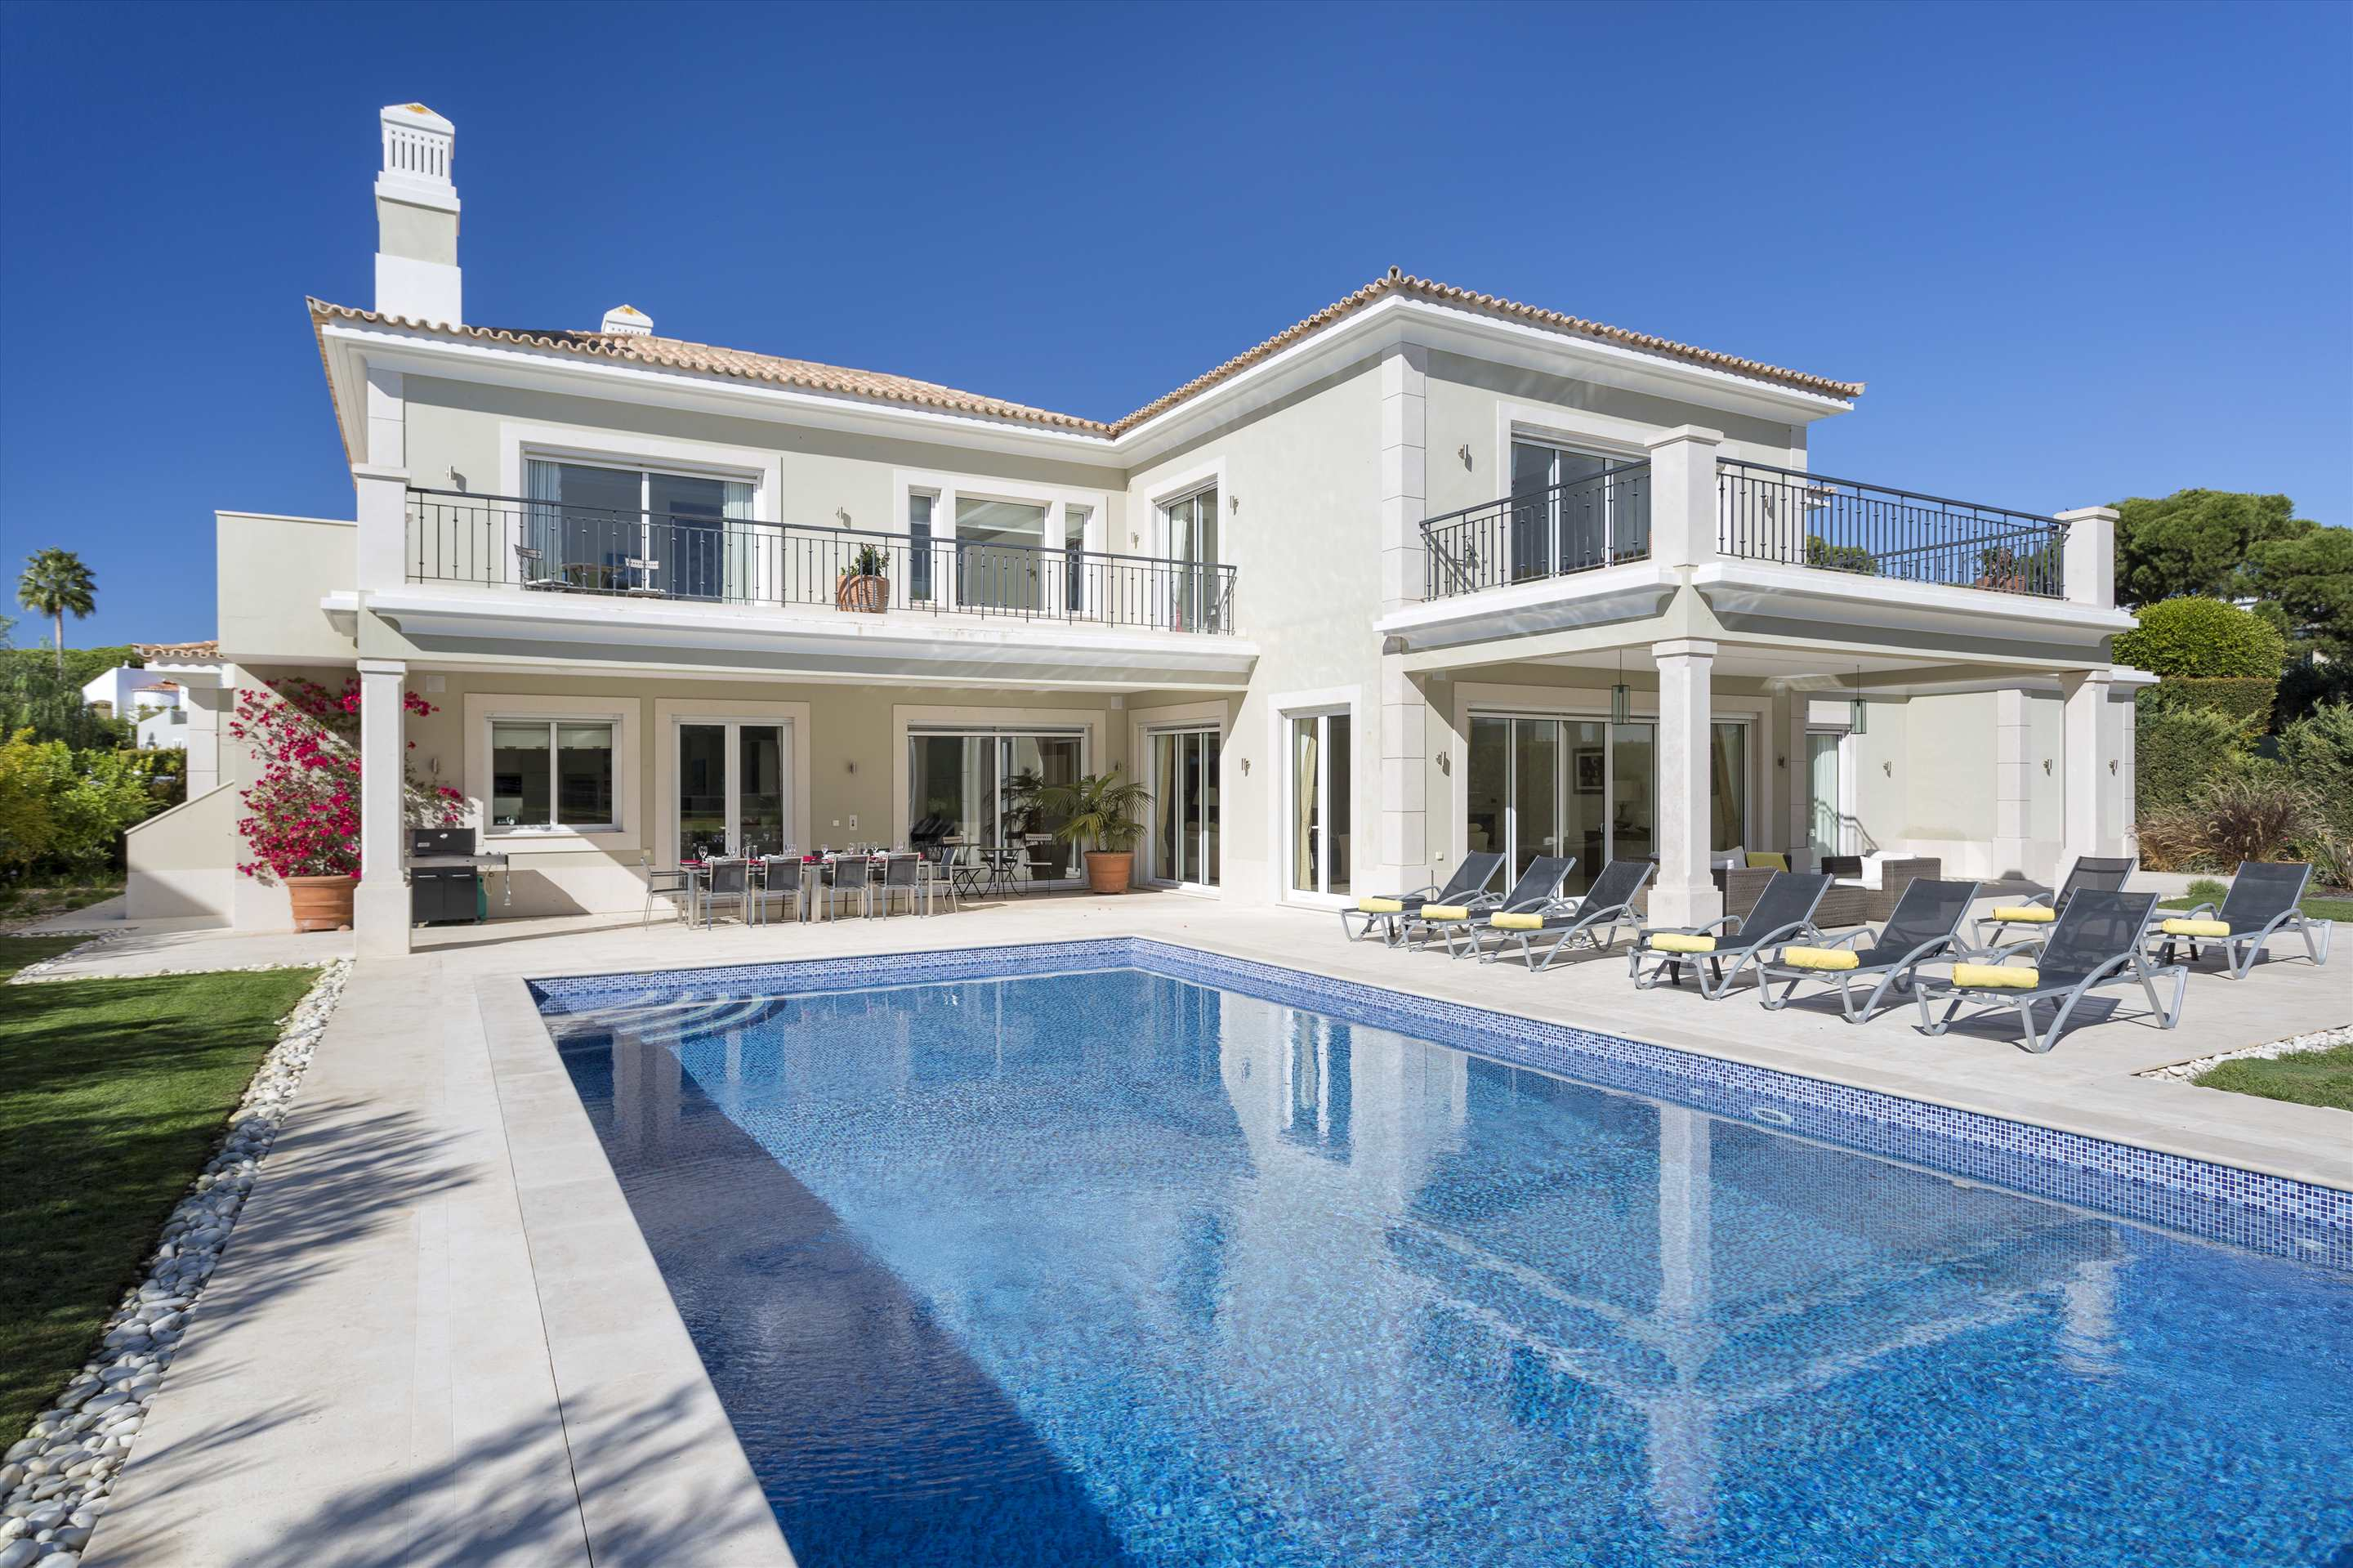 Villa Belissima, 5 bedroom villa in Vale do Lobo, Algarve Photo #1